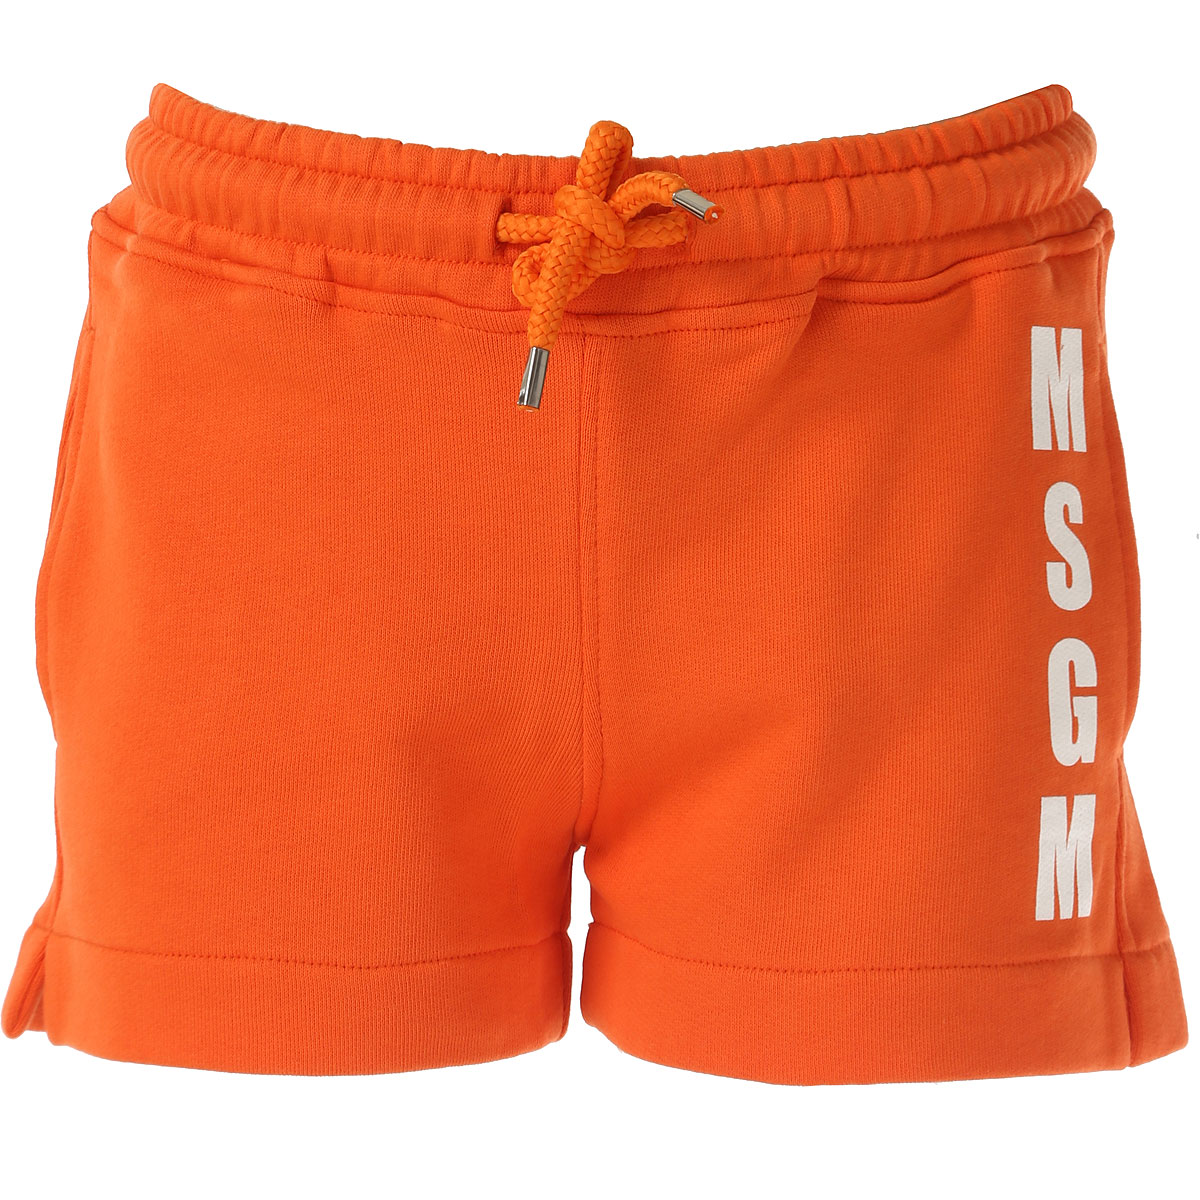 MSGM Kids Shorts for Girls On Sale in Outlet, Orange, Cotton, 2017, 4Y